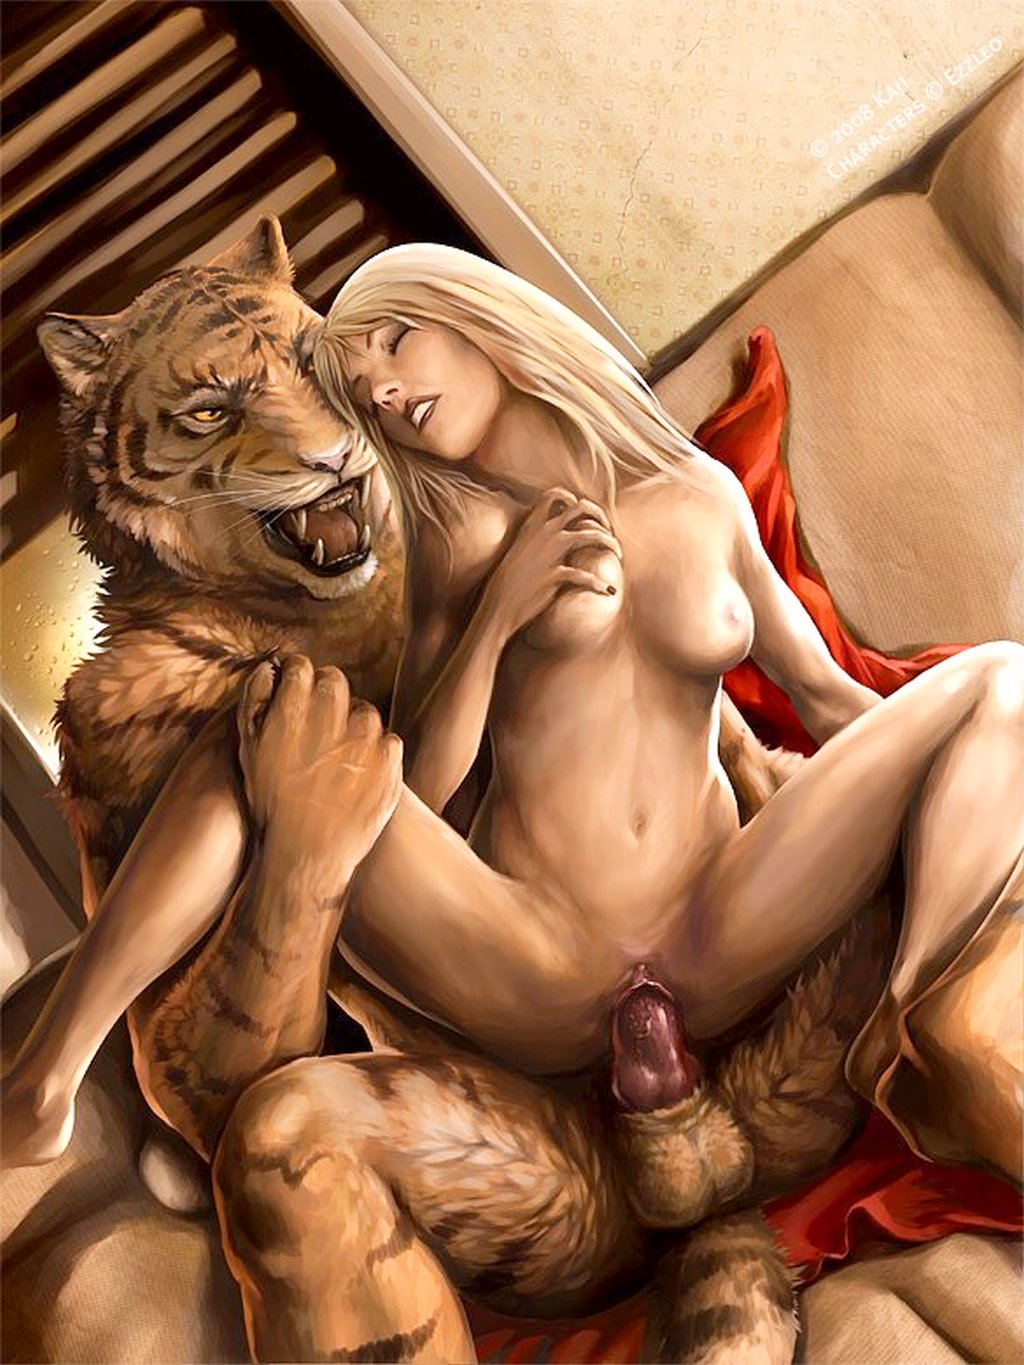 Male tiger fucks female human porn nude photos